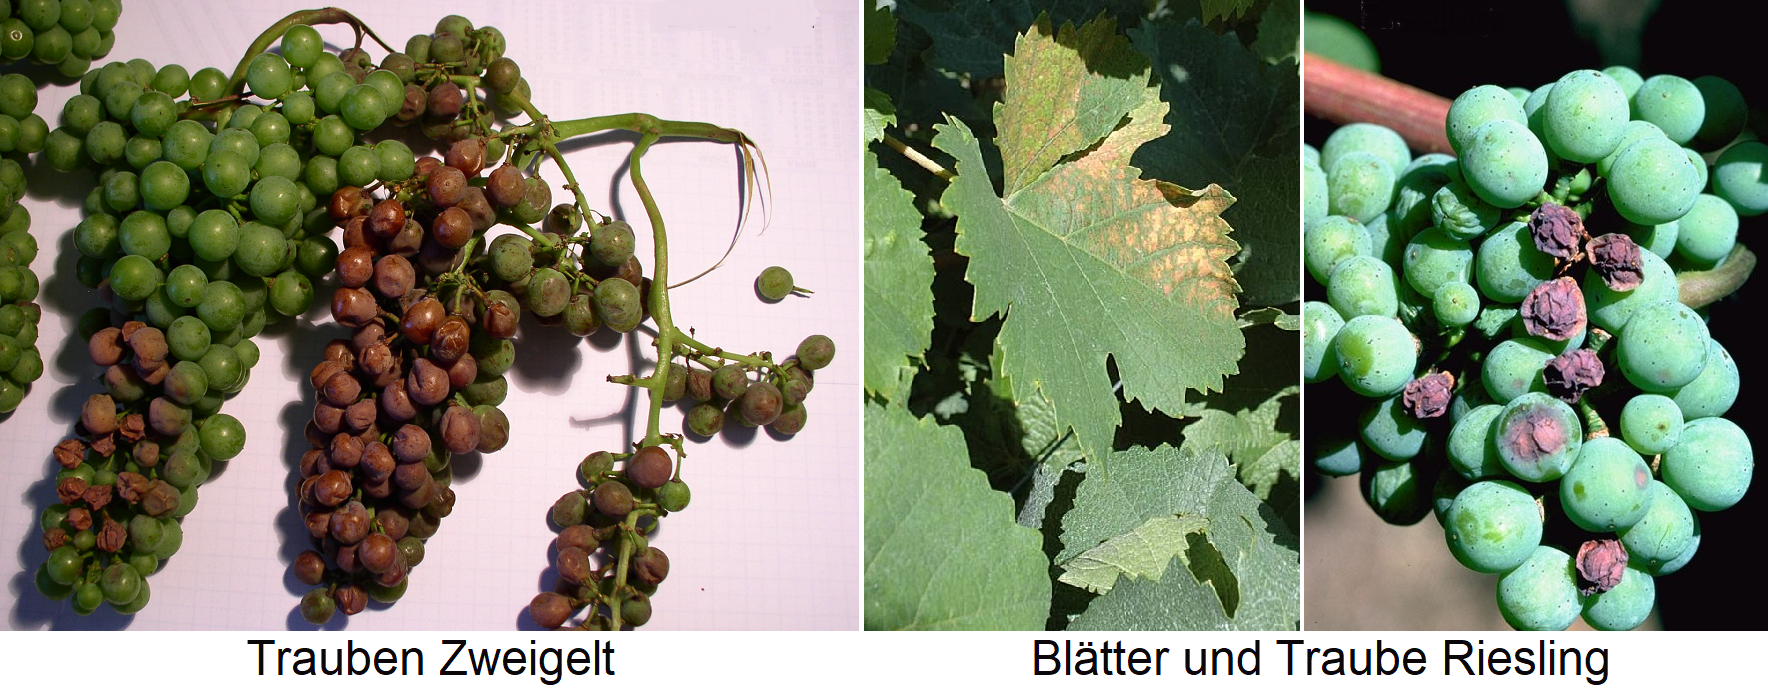 Sunburn - damage to the Grüner Veltliner grape and Riesling leaf and grape